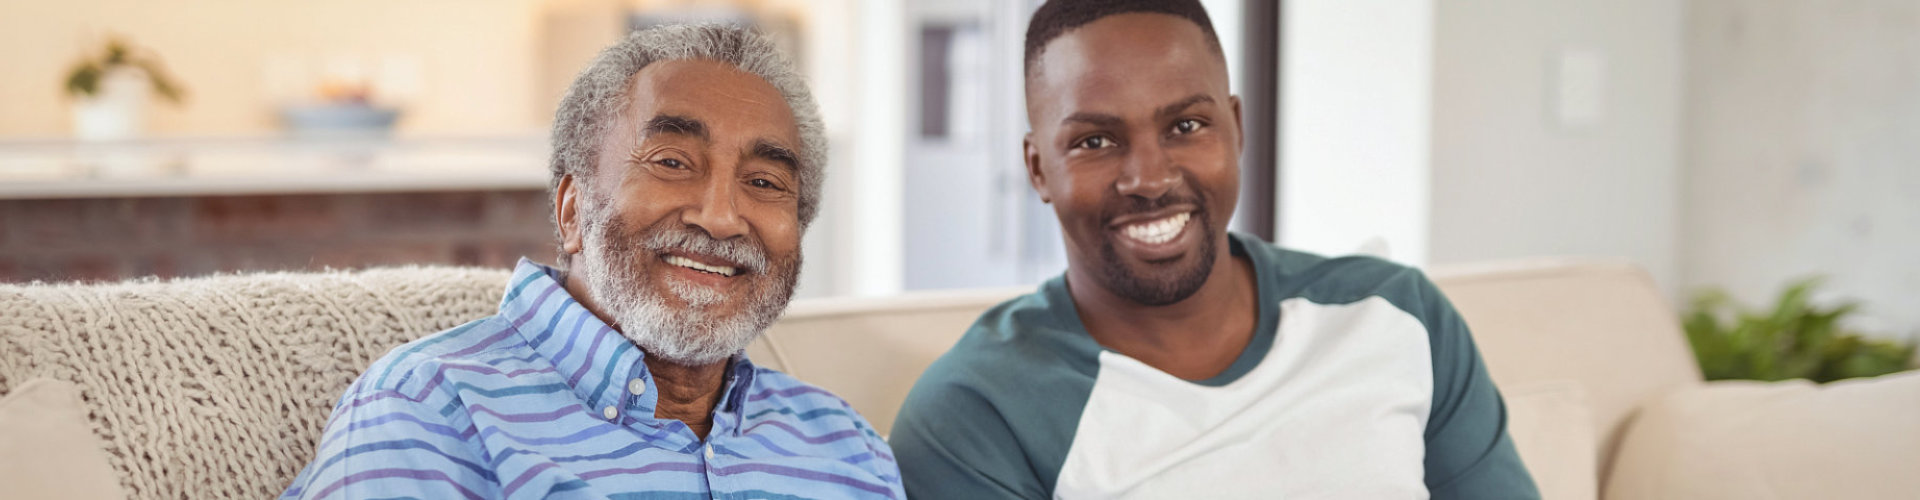 male caregiver and senior man are smiling